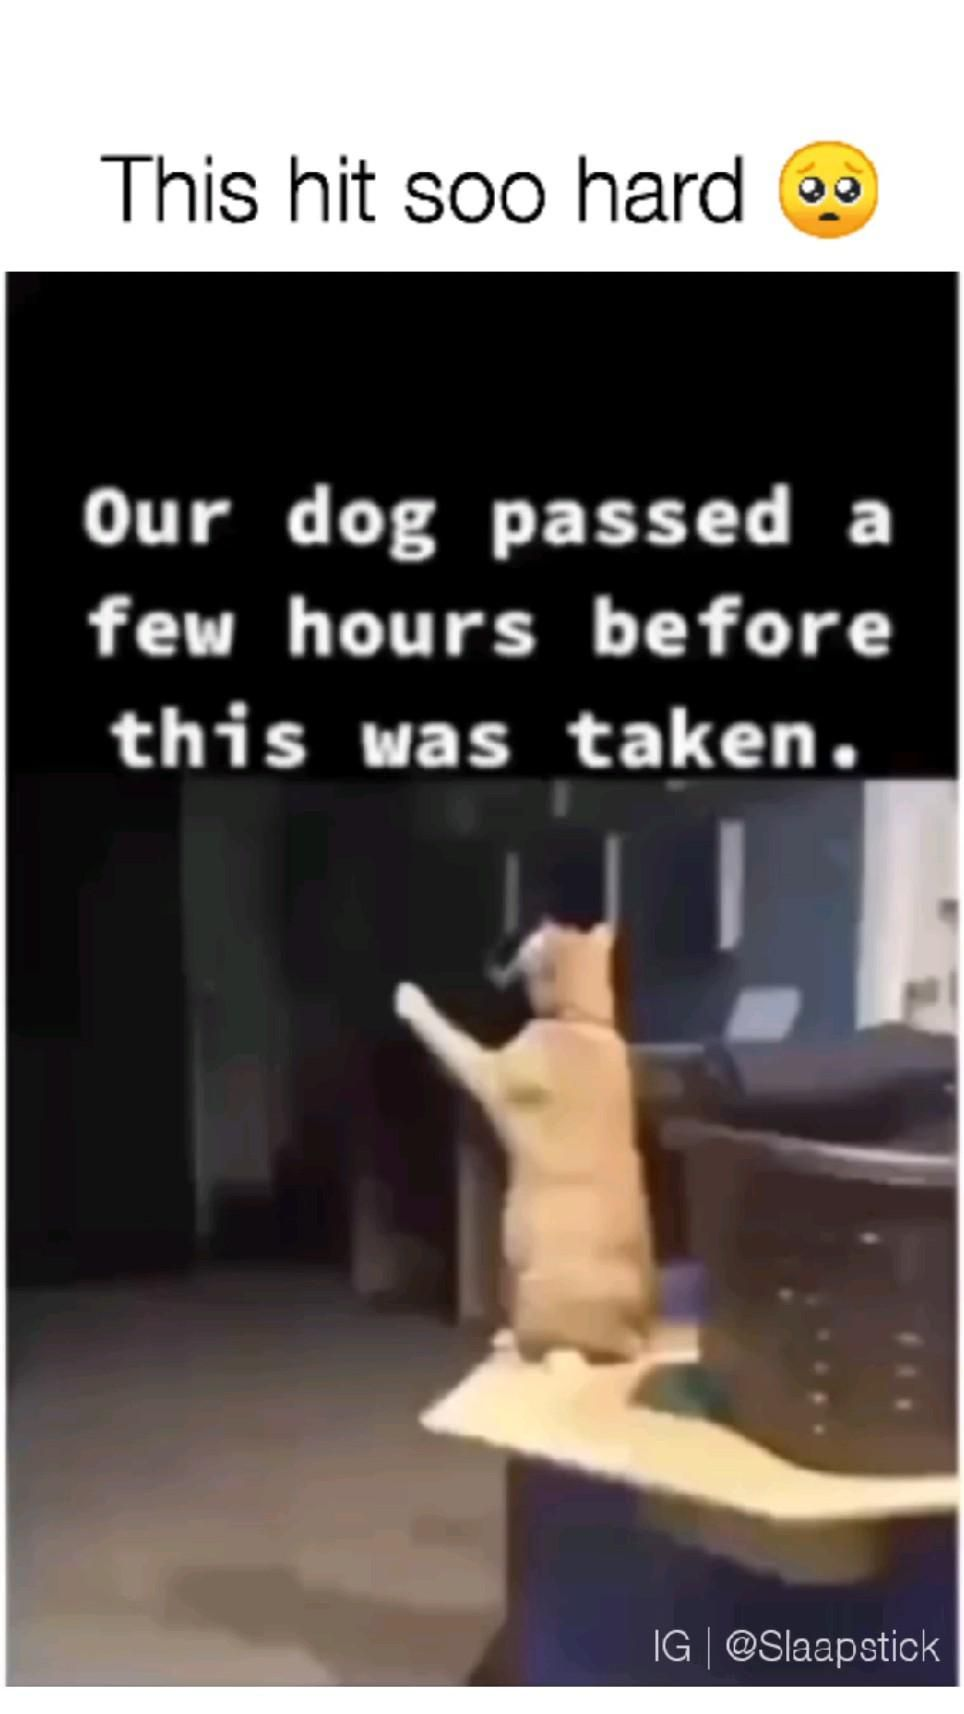 This made me cry 😭 #hearttouching #animals #animalslove